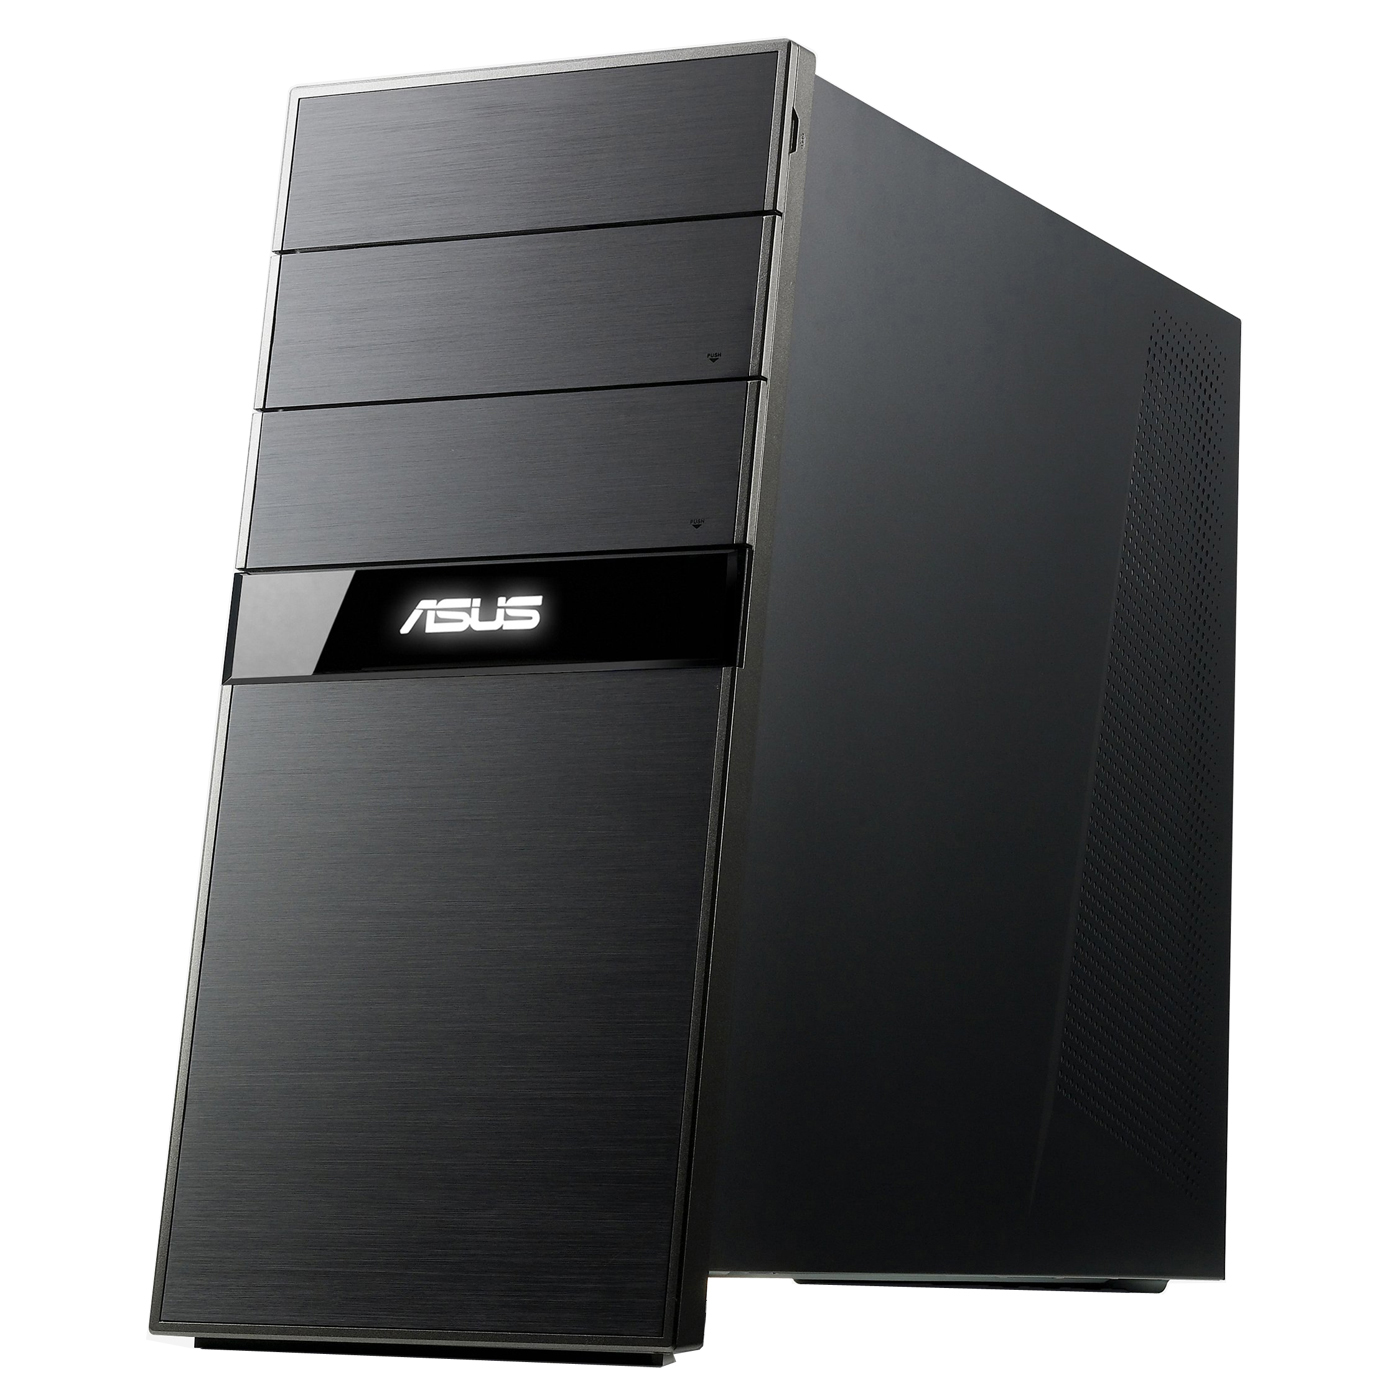 asus cg8265 frch01 pc de bureau asus sur ldlc. Black Bedroom Furniture Sets. Home Design Ideas